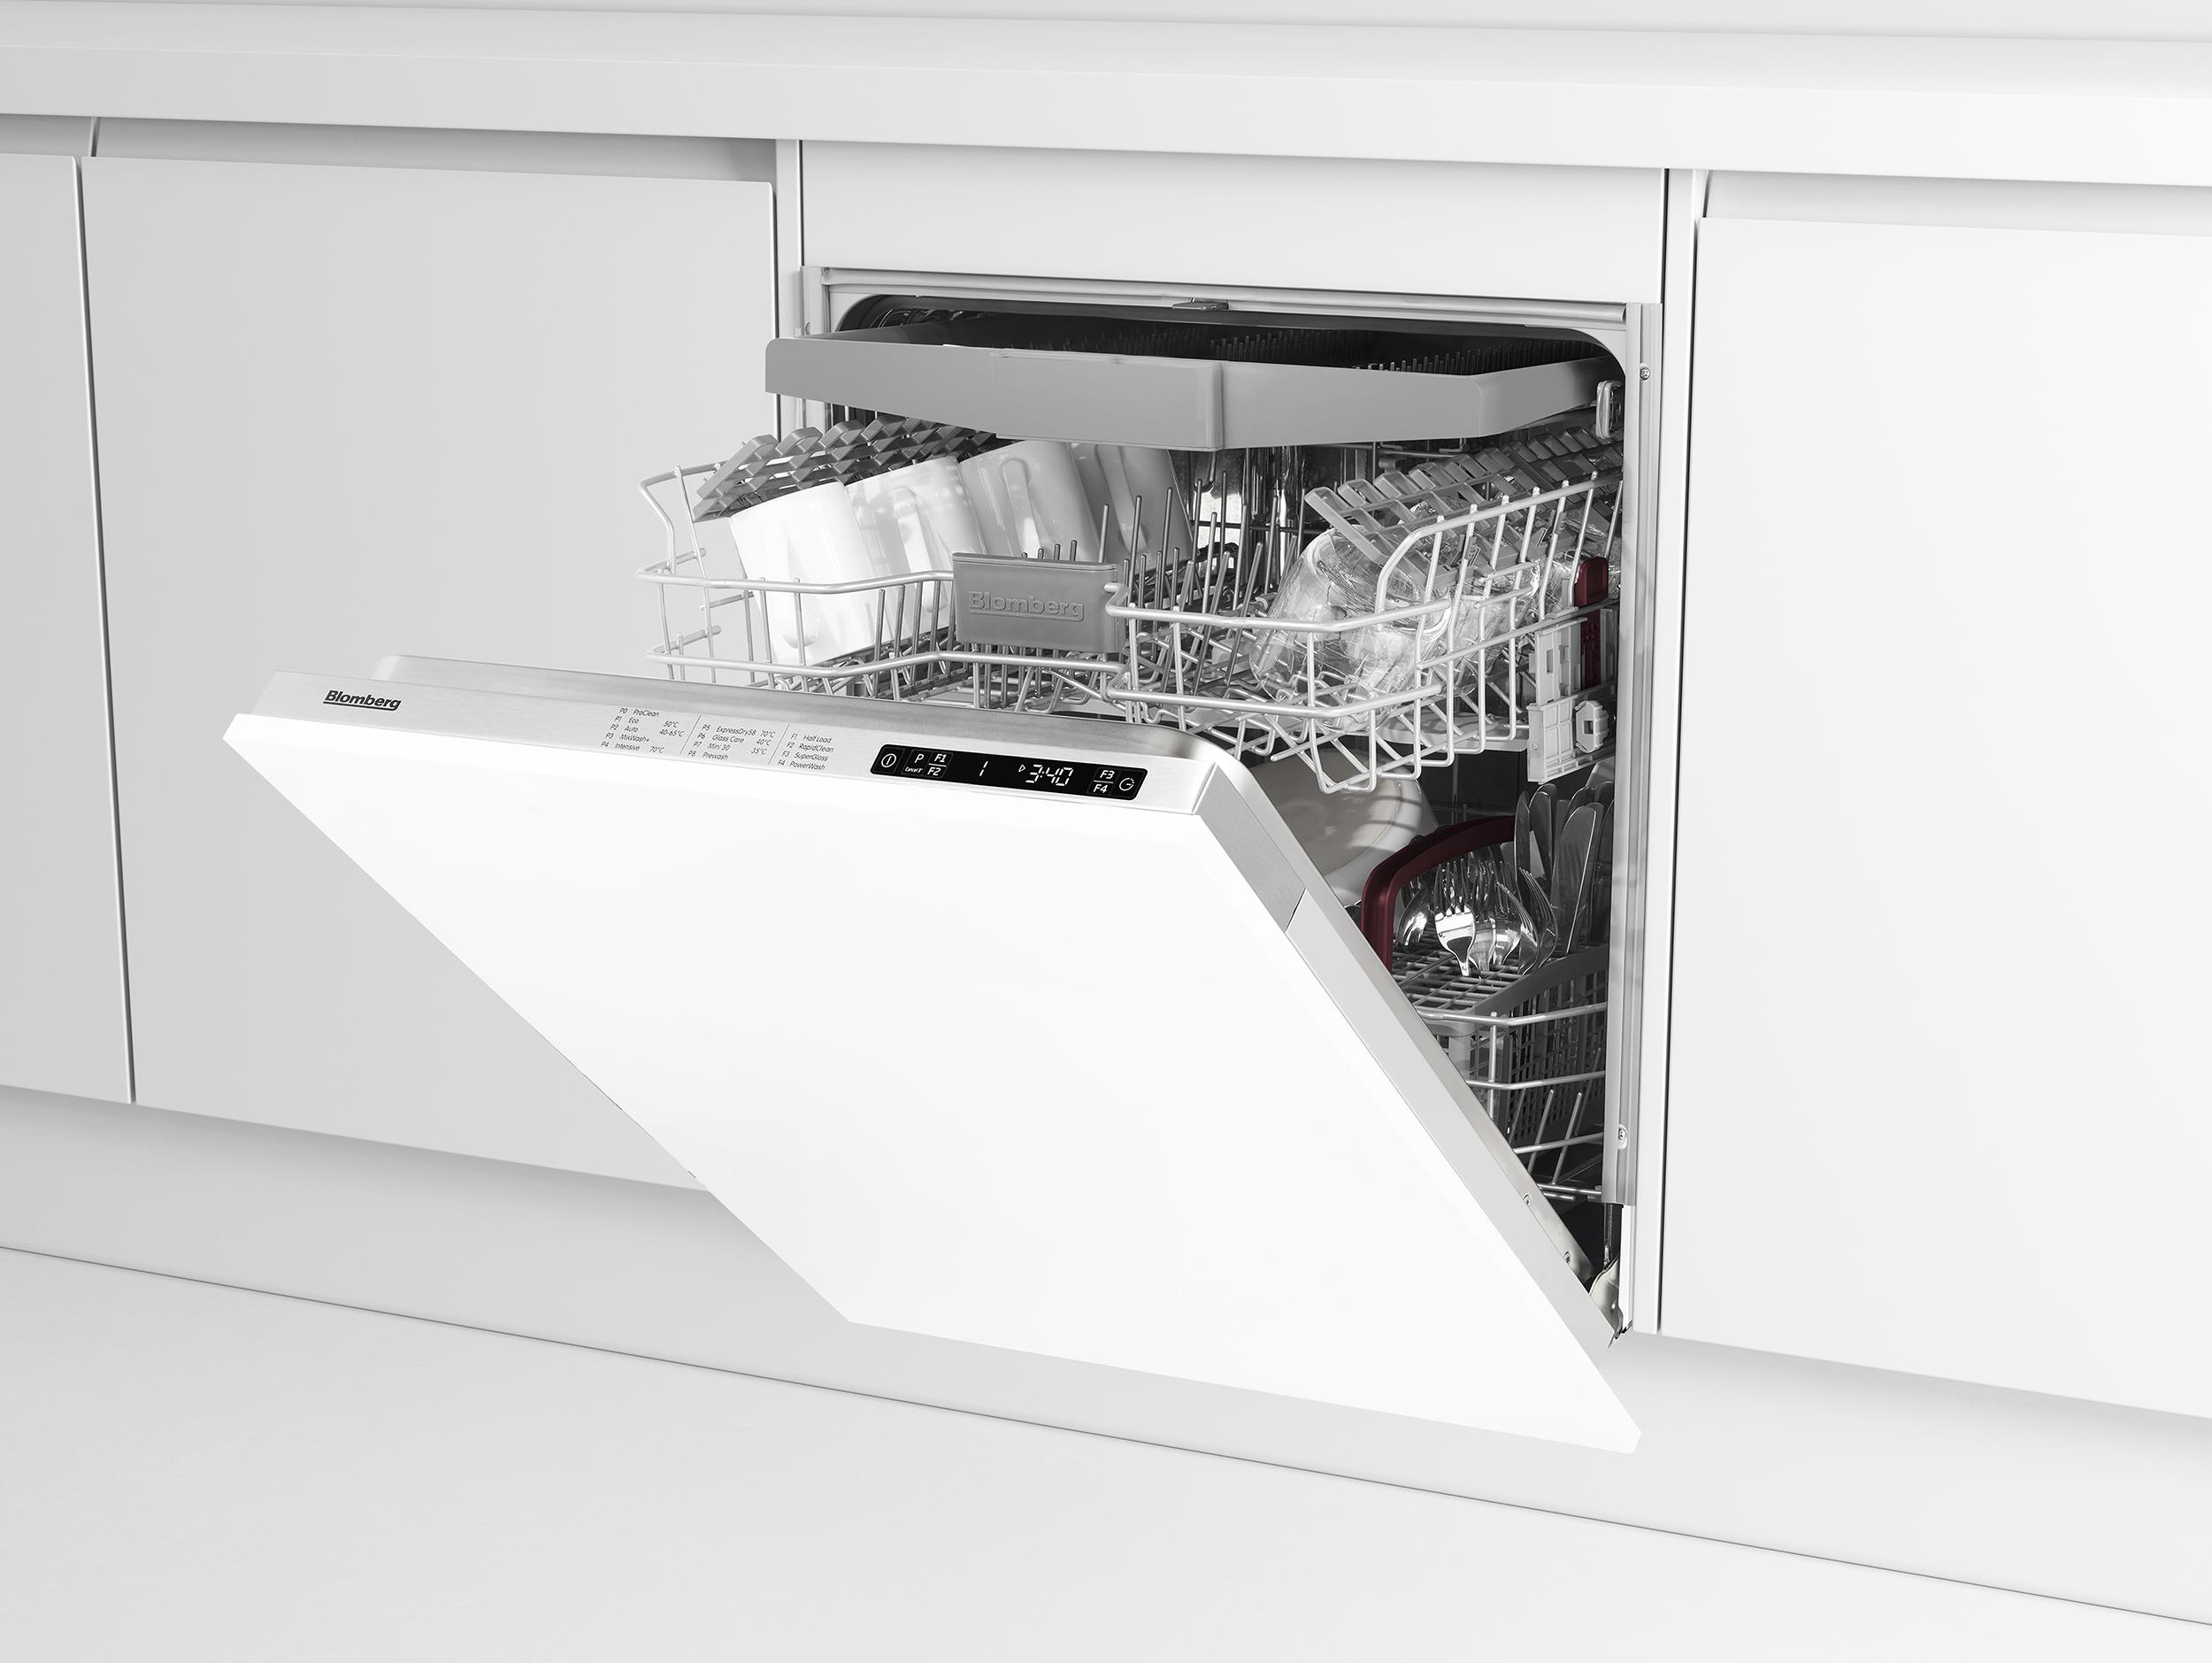 Lave Vaisselle Skinande Ldv42244 Full Size Integrated Dishwasher With A 43 43 Energy